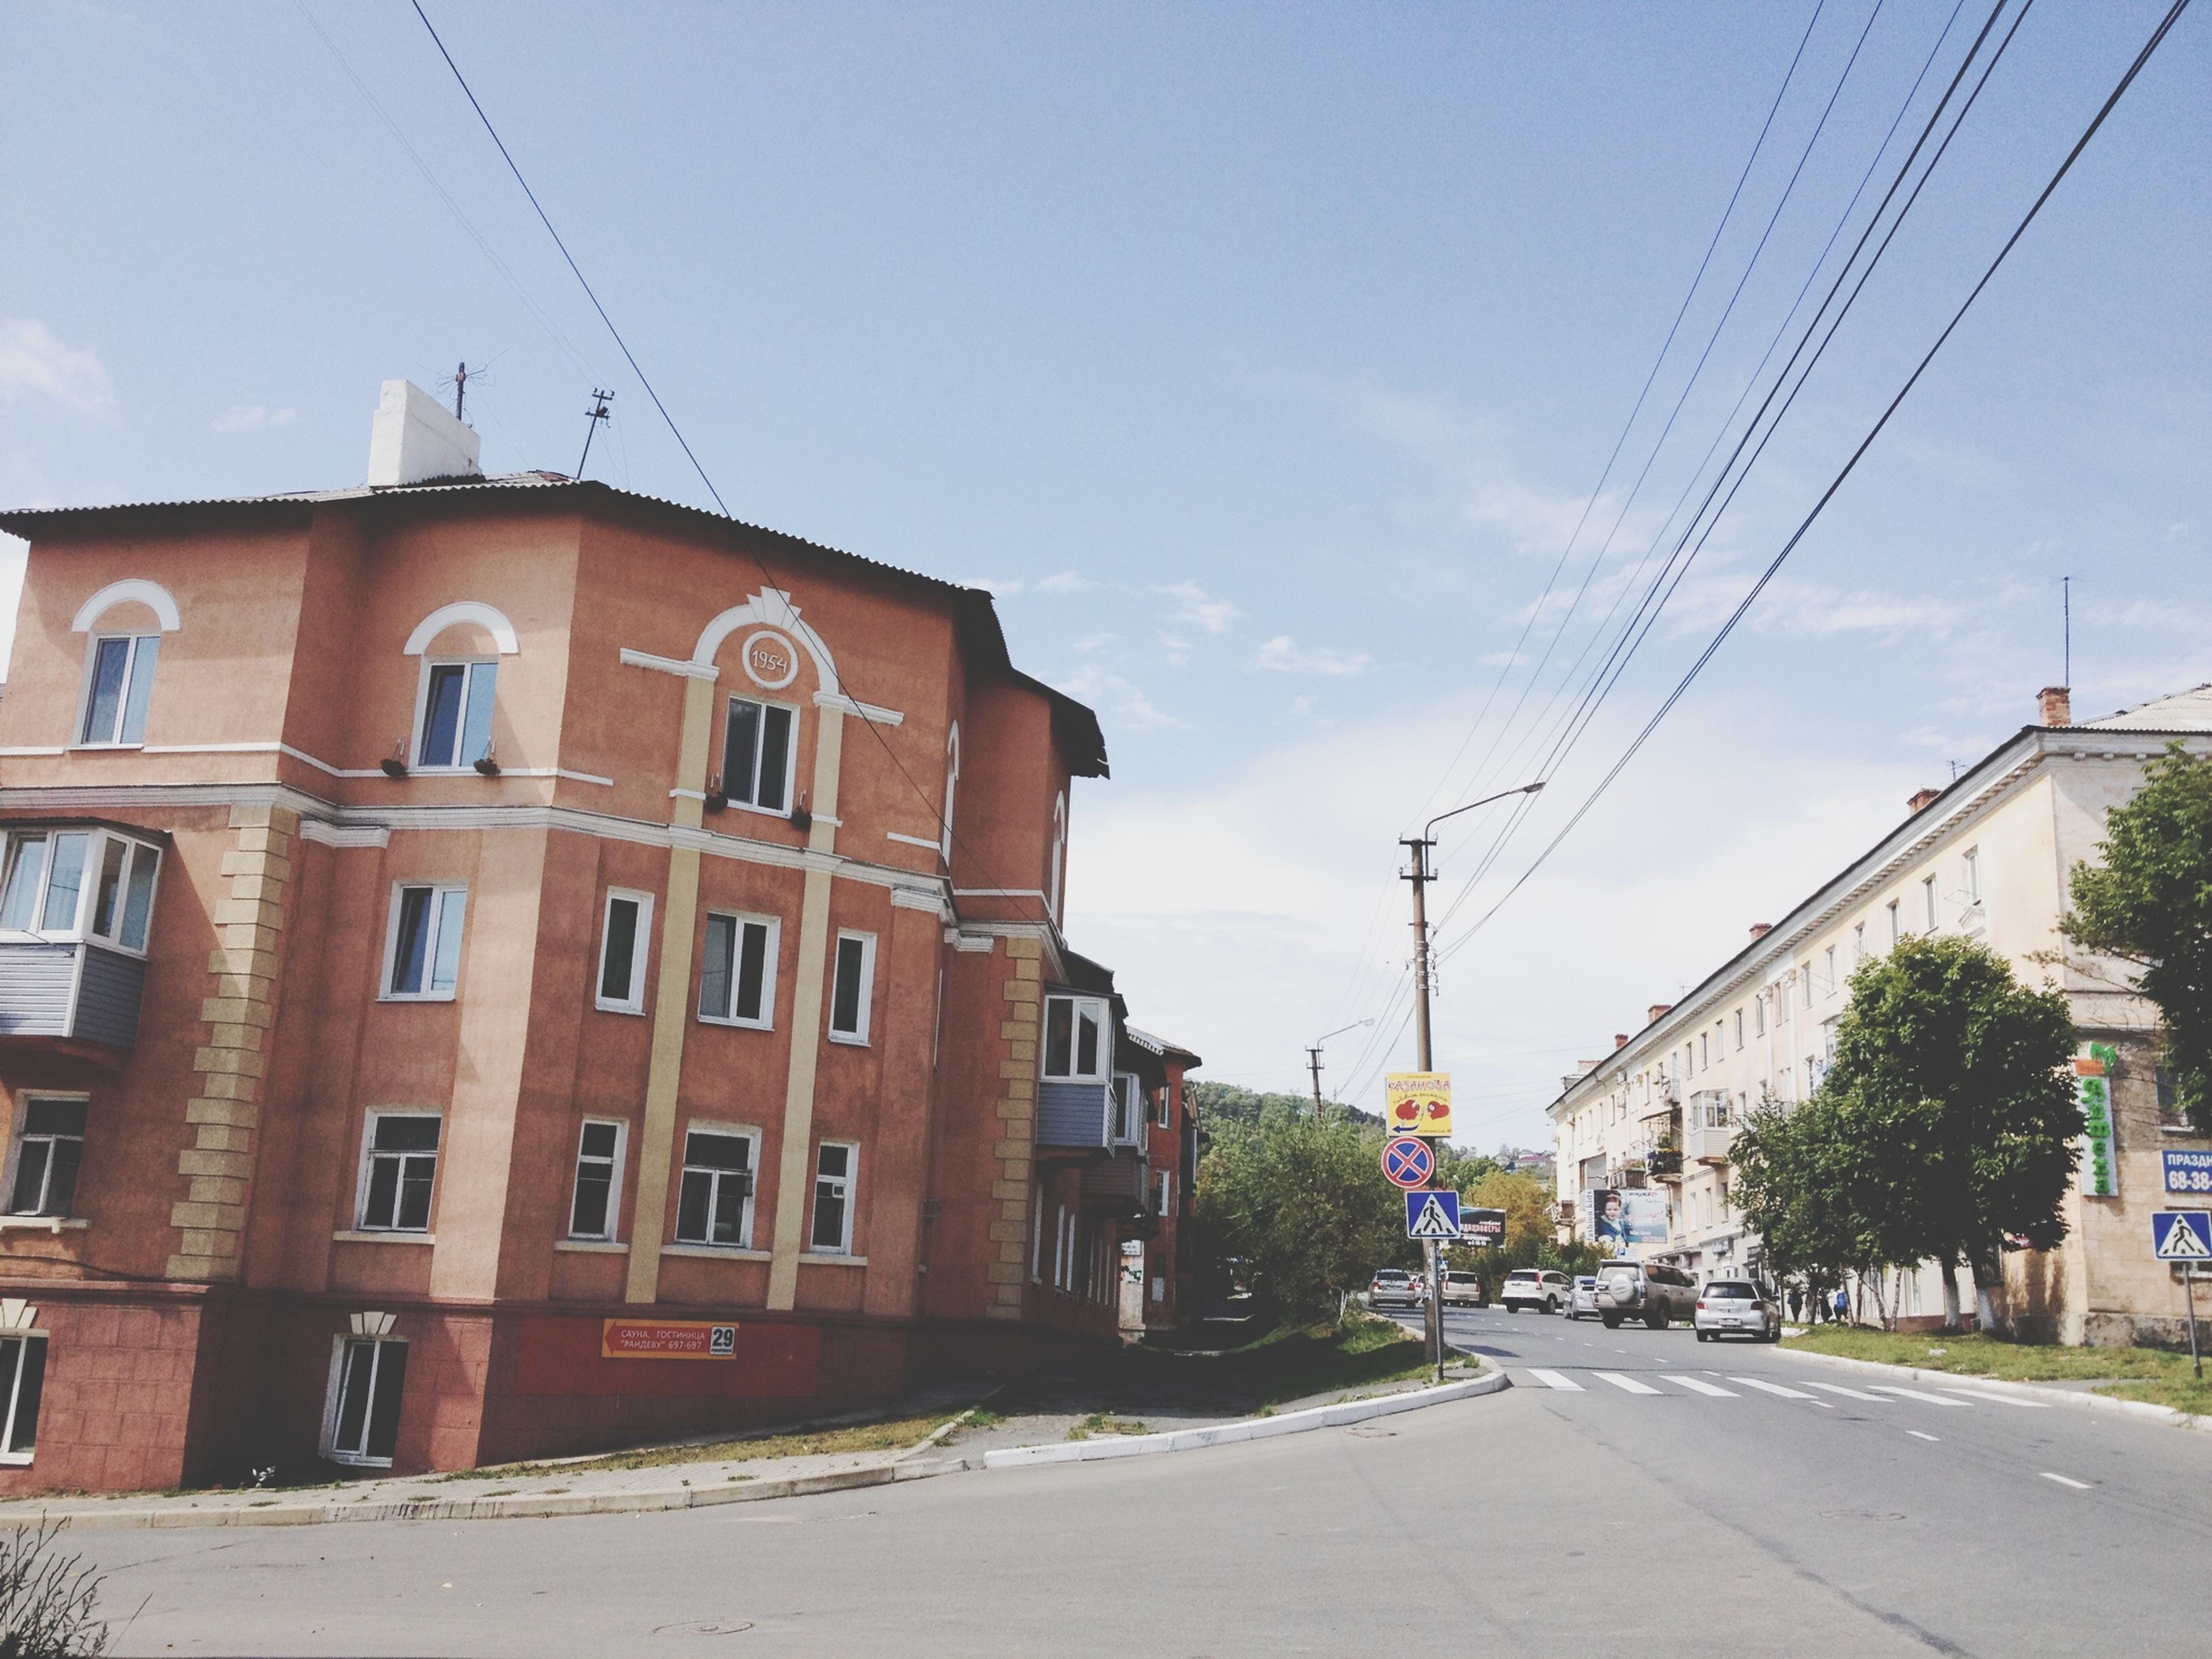 building exterior, power line, architecture, built structure, electricity pylon, cable, street, sky, road, electricity, transportation, power supply, the way forward, house, power cable, residential structure, residential building, city, diminishing perspective, outdoors